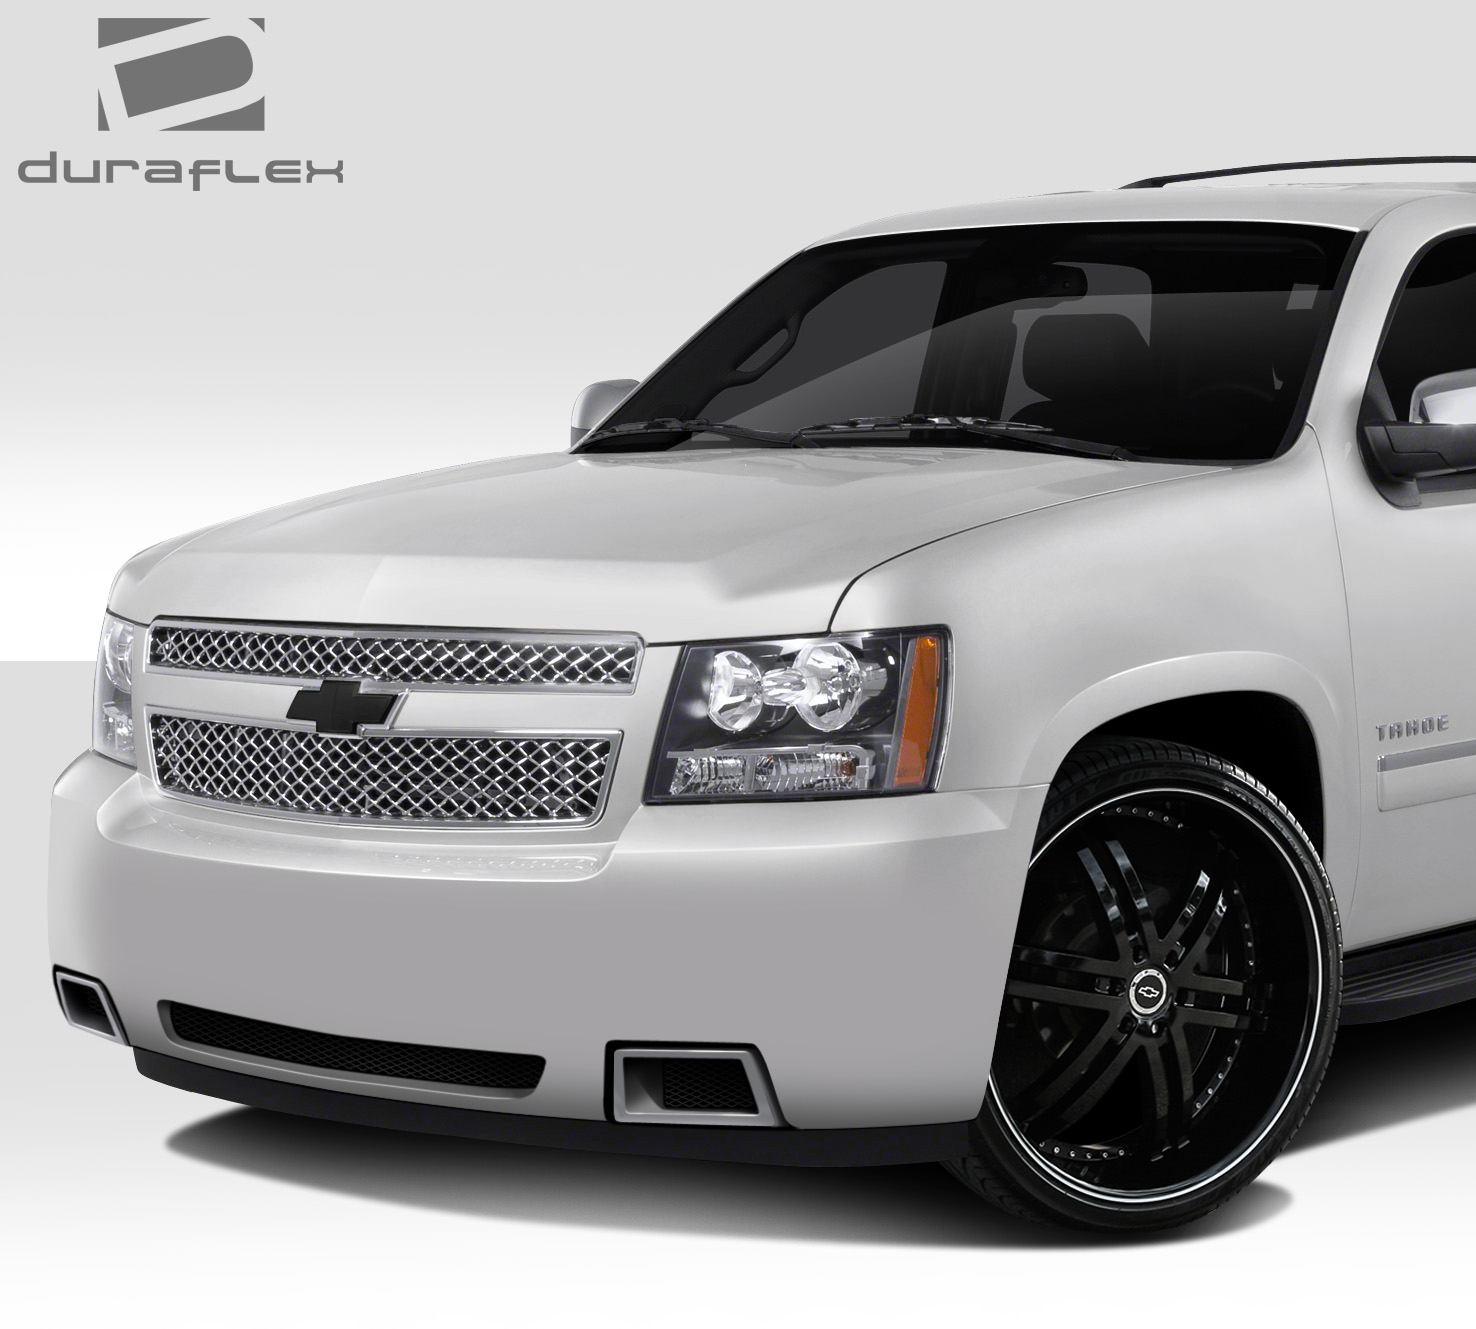 2007 Chevrolet Tahoe Ltz >> Welcome to Extreme Dimensions :: Inventory Item :: 2007 ...